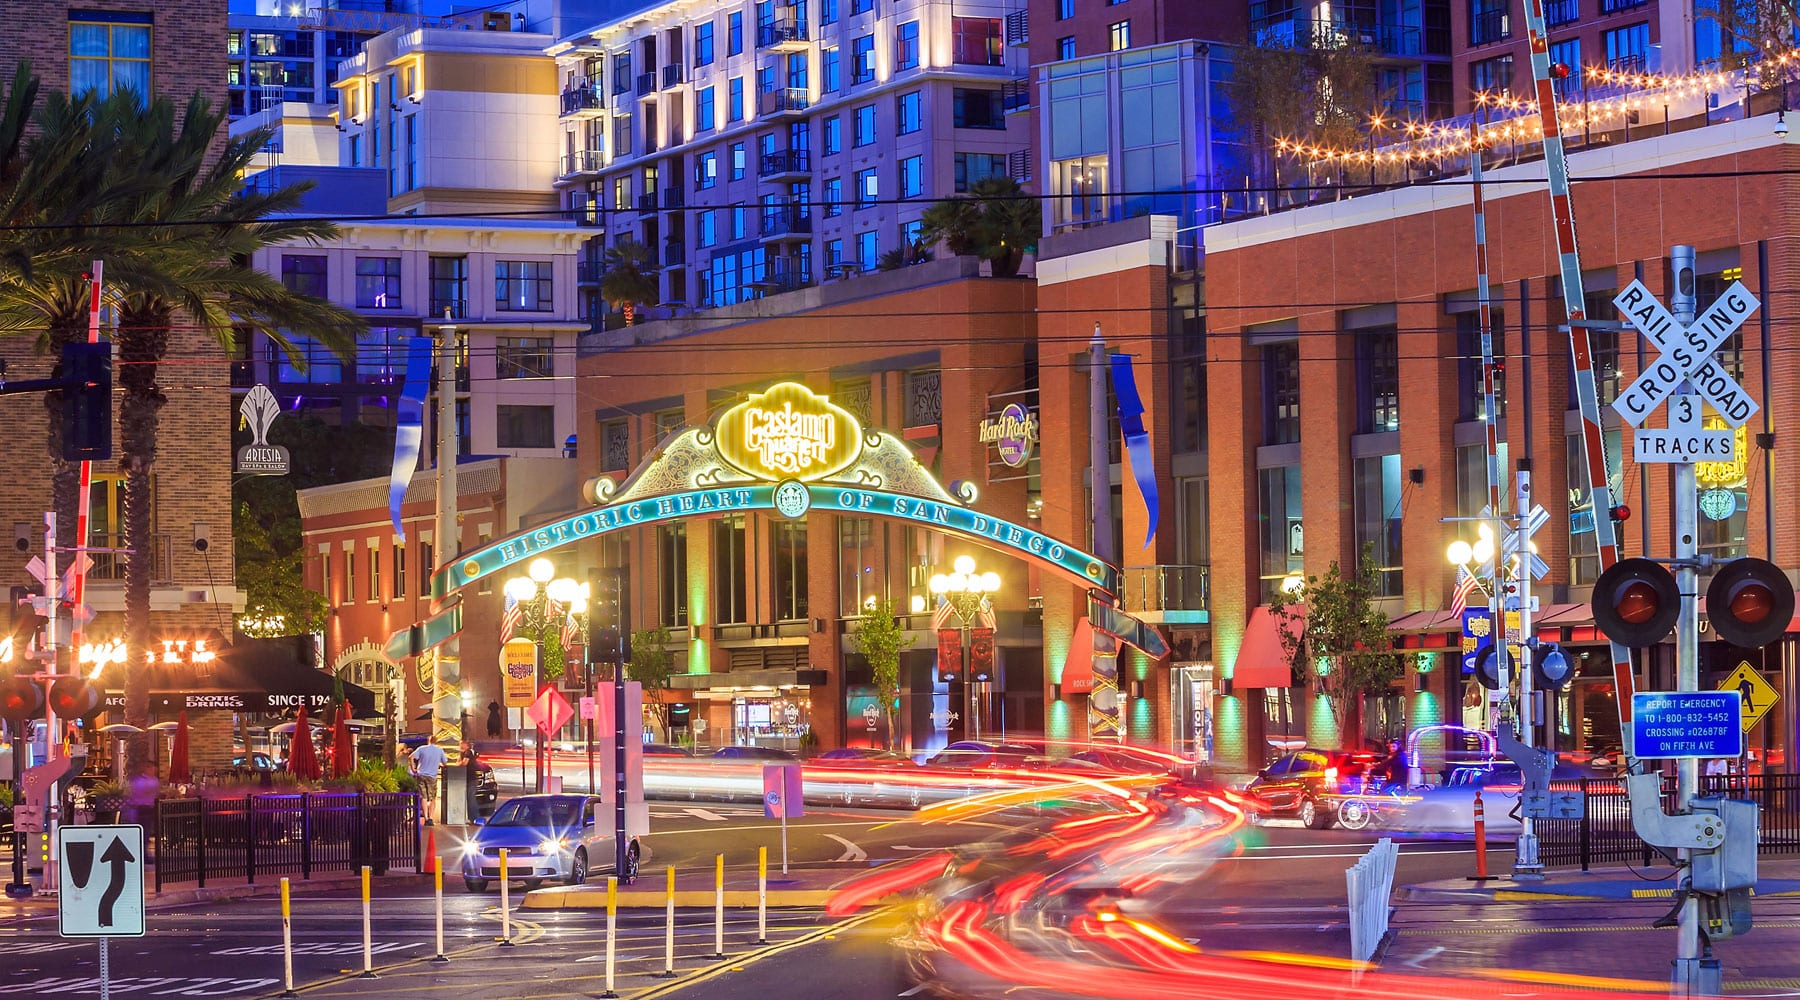 24 Hours in the Gaslamp Quarter